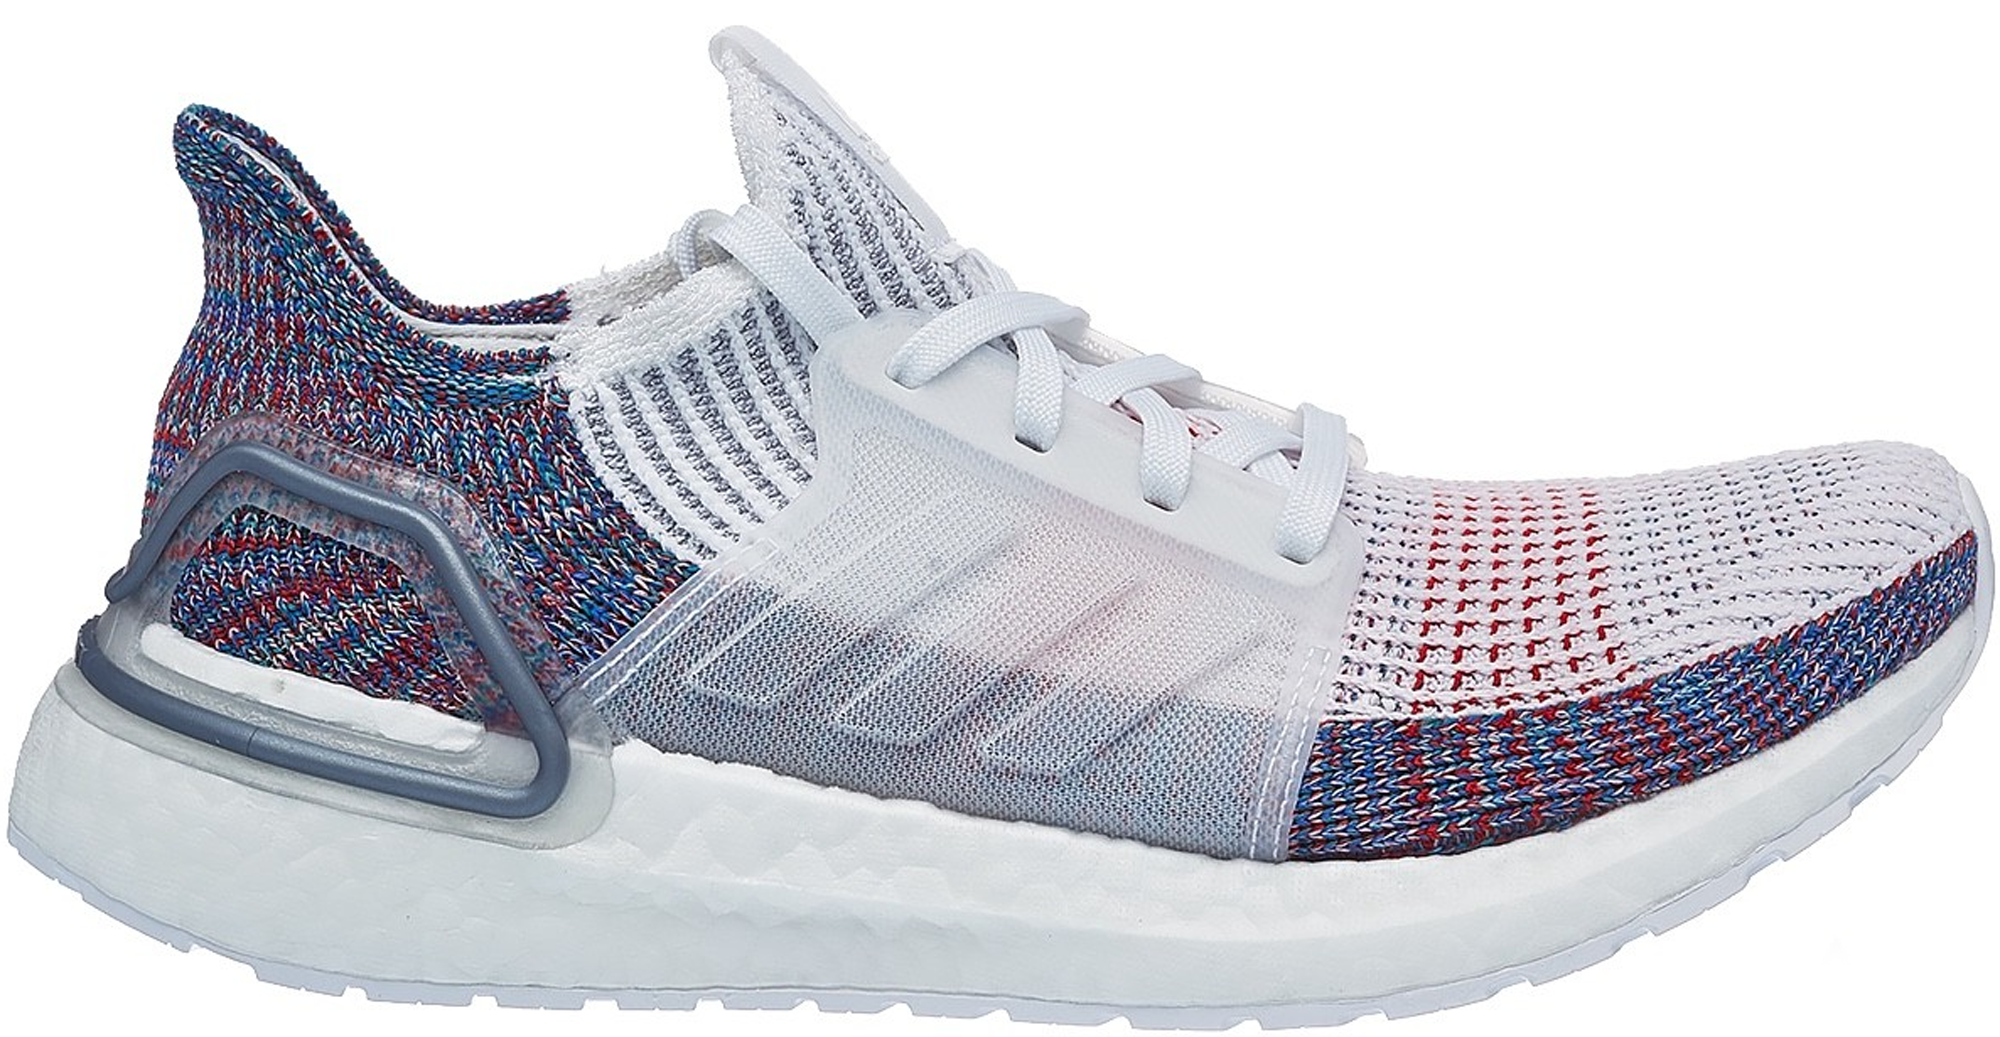 7d780f319 ... purchase adidas ultra boost 2019 white blue multi color w 88d57 631d4